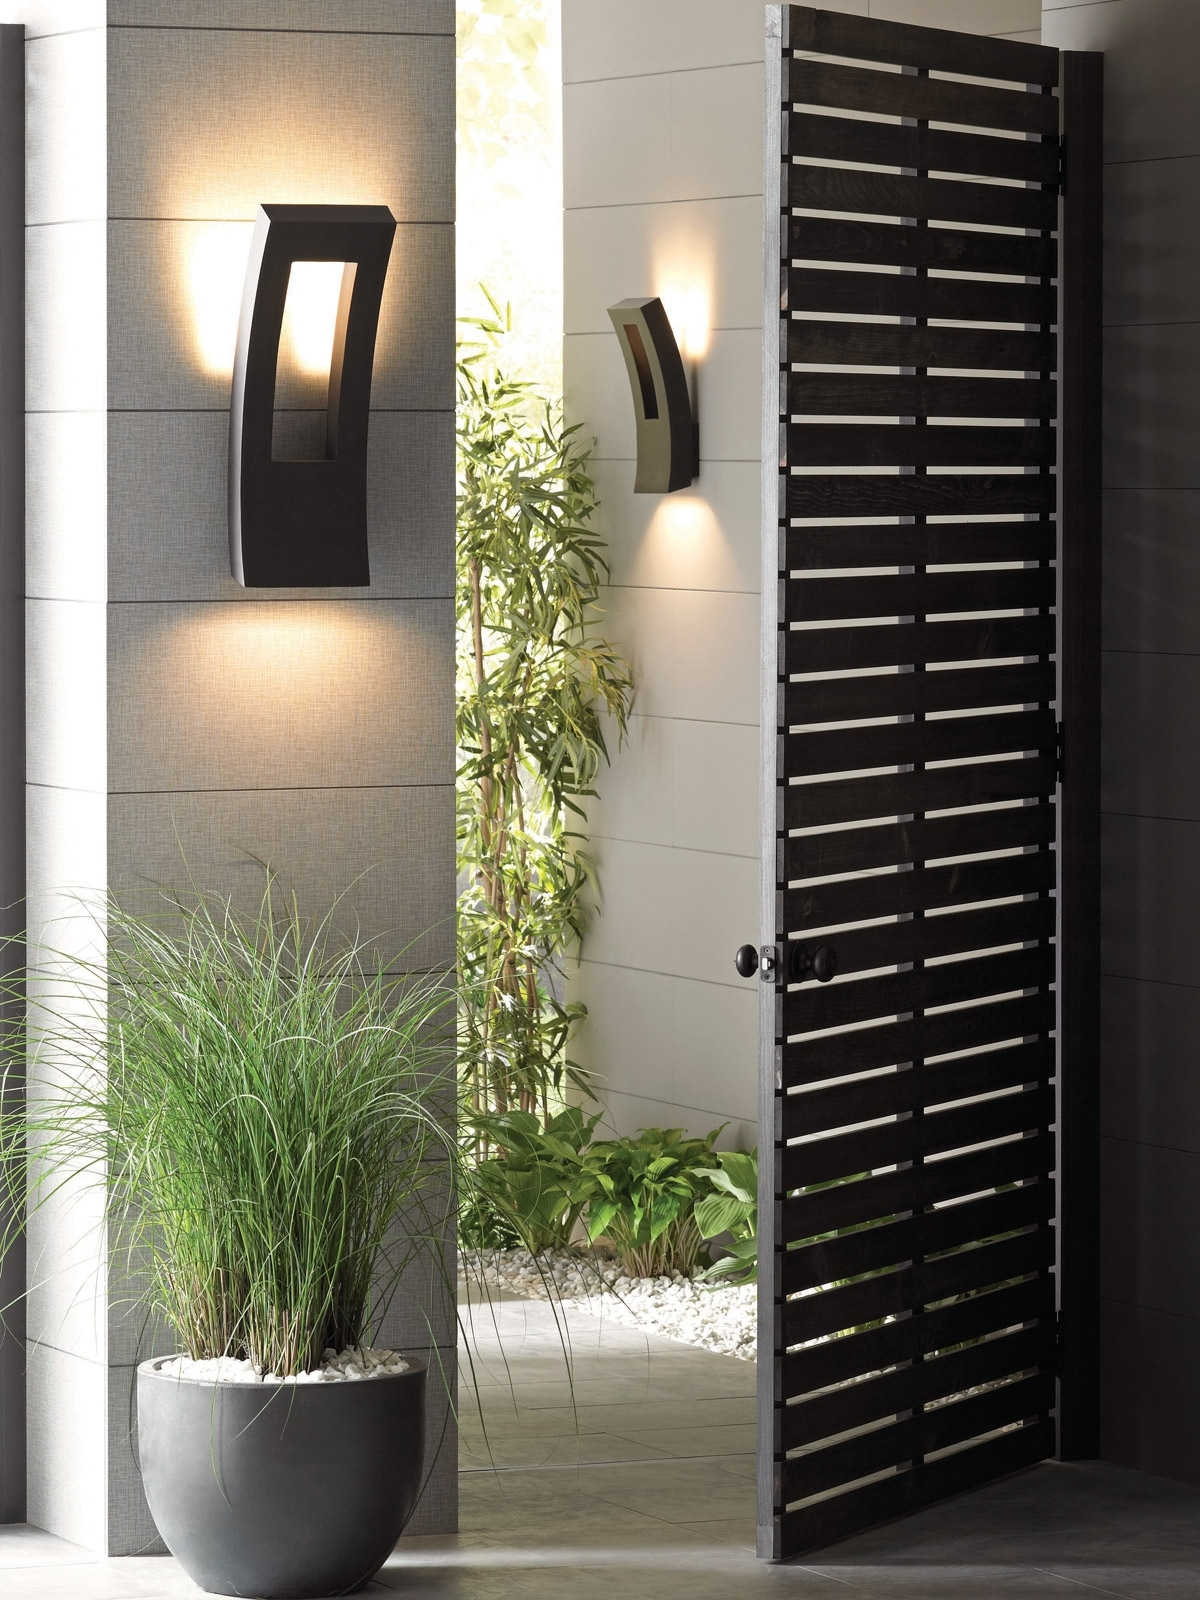 Commercial Outdoor Wall Lighting For Most Current Light : Good Commercial Exterior Wall Mounted Light Fixtures Outside (View 15 of 20)